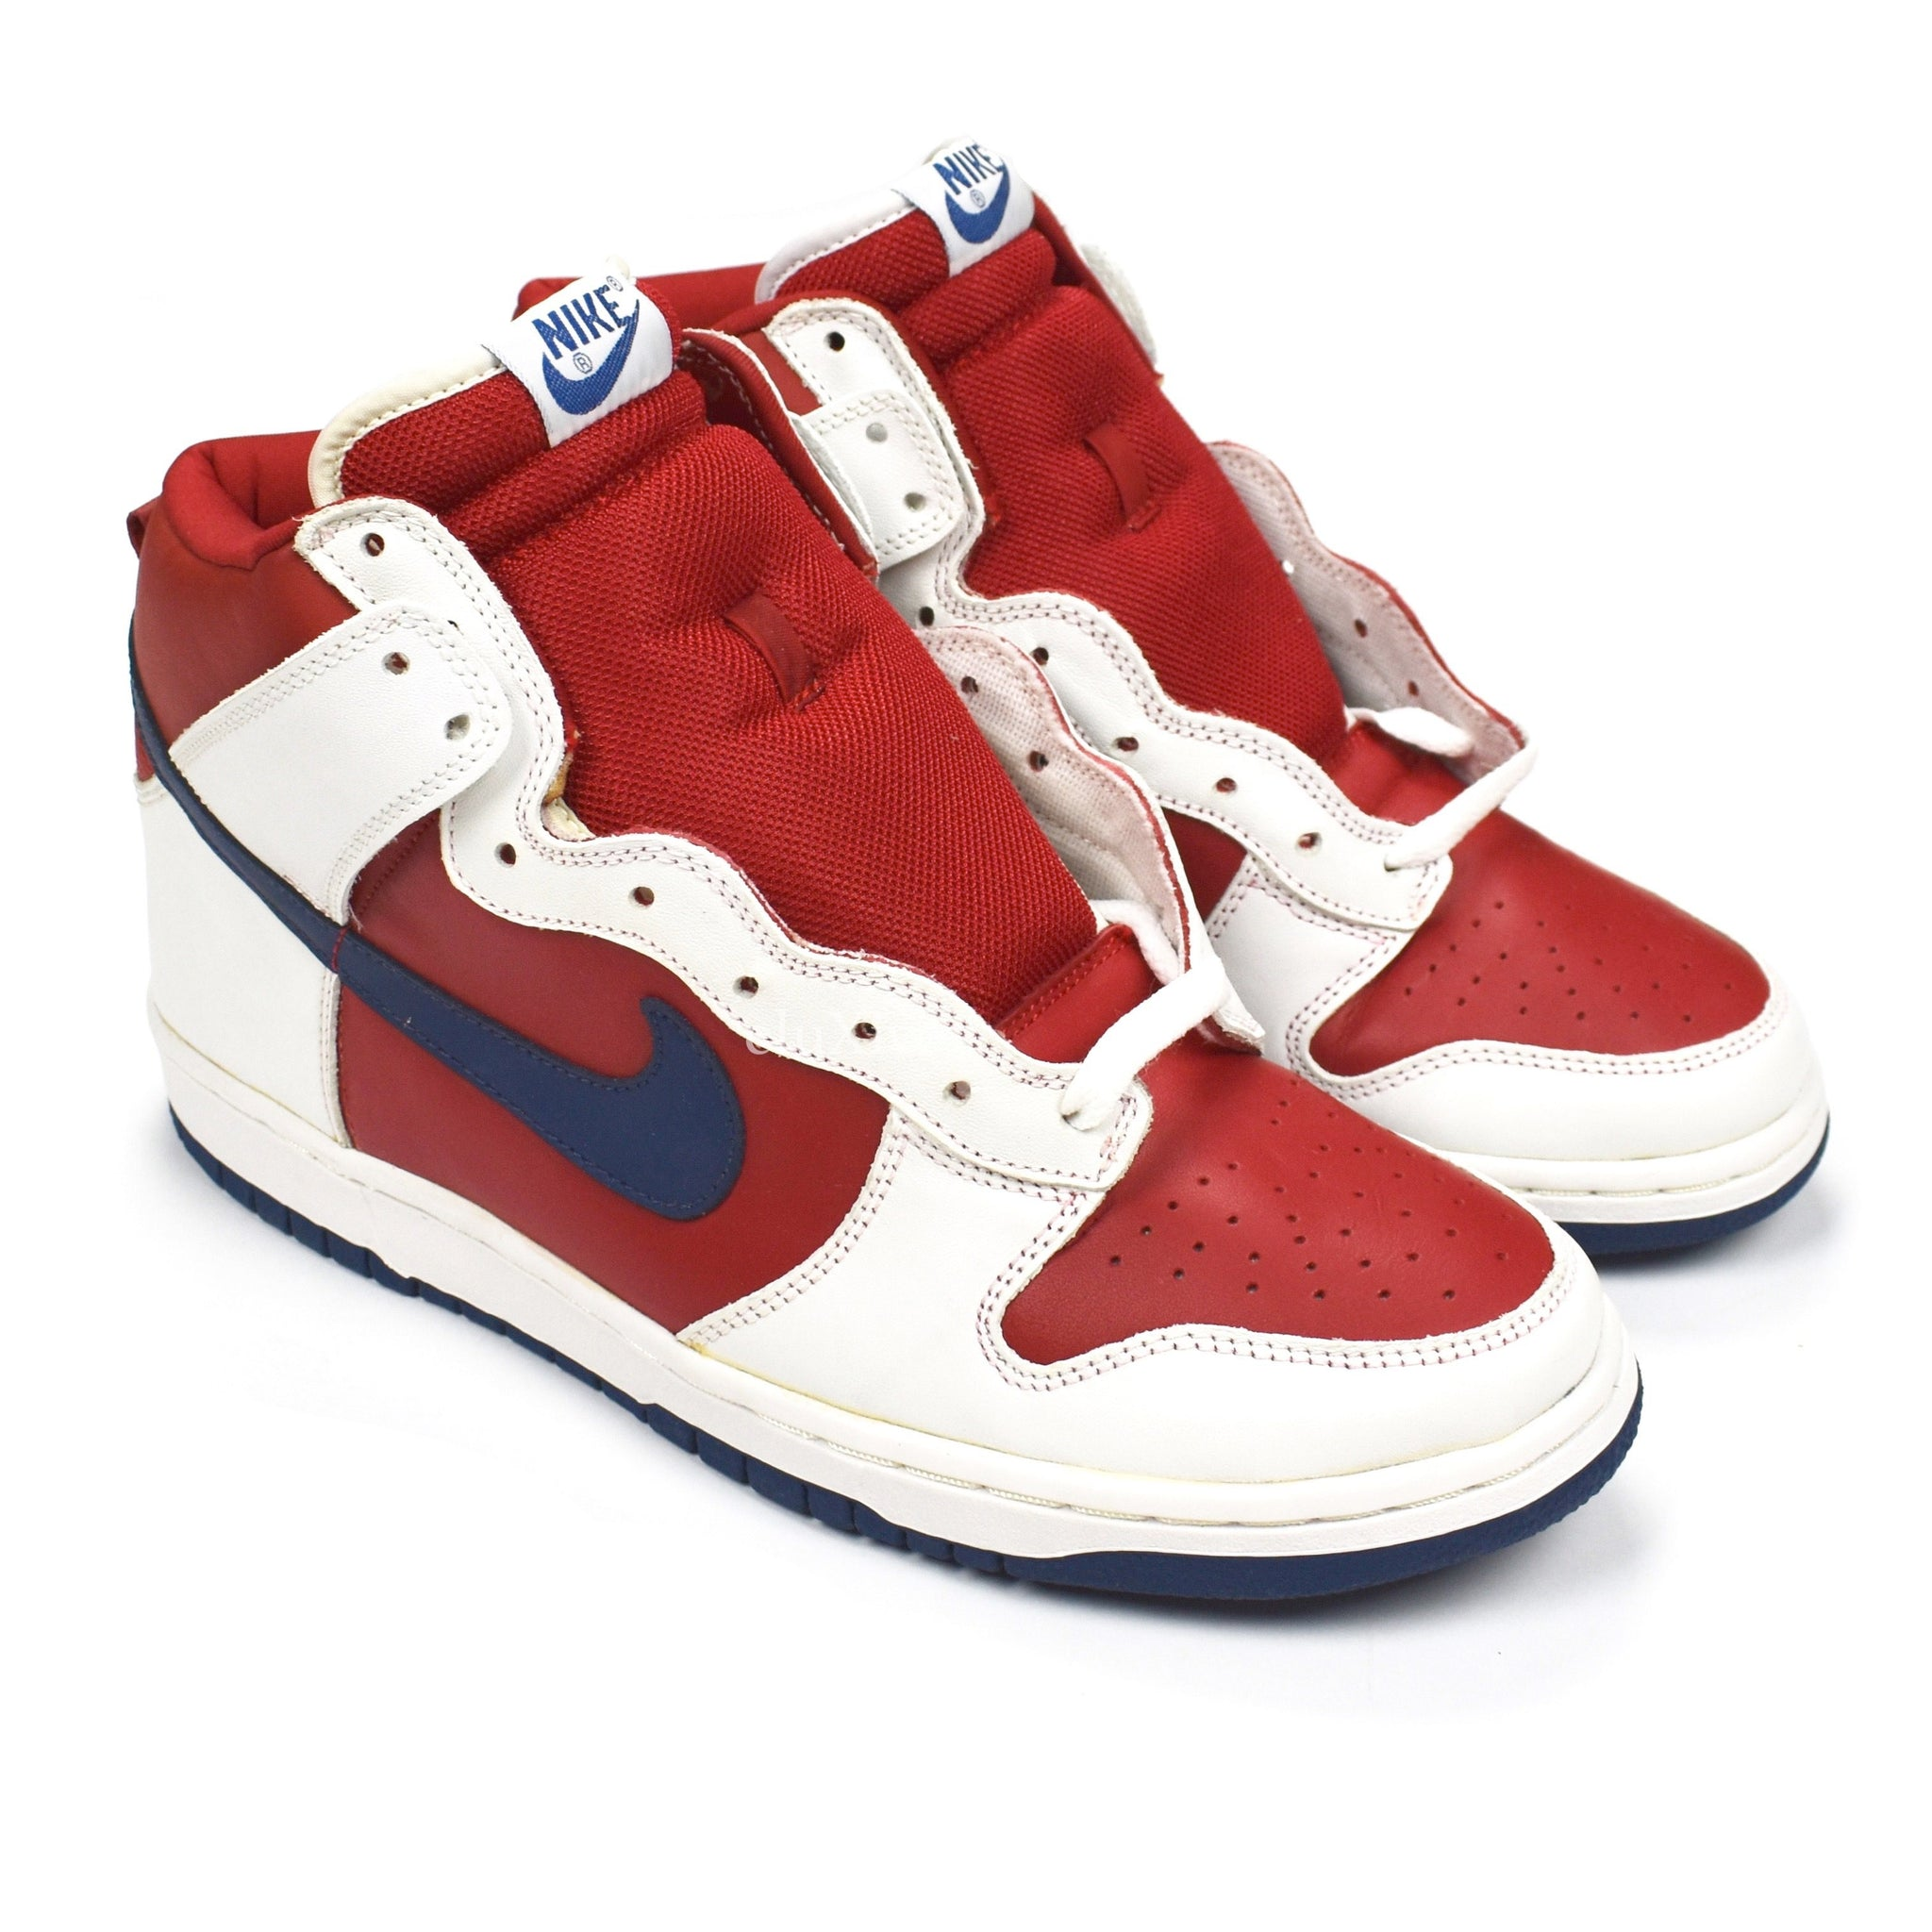 Nike - 2002 Dunk High 'Clippers' (Red